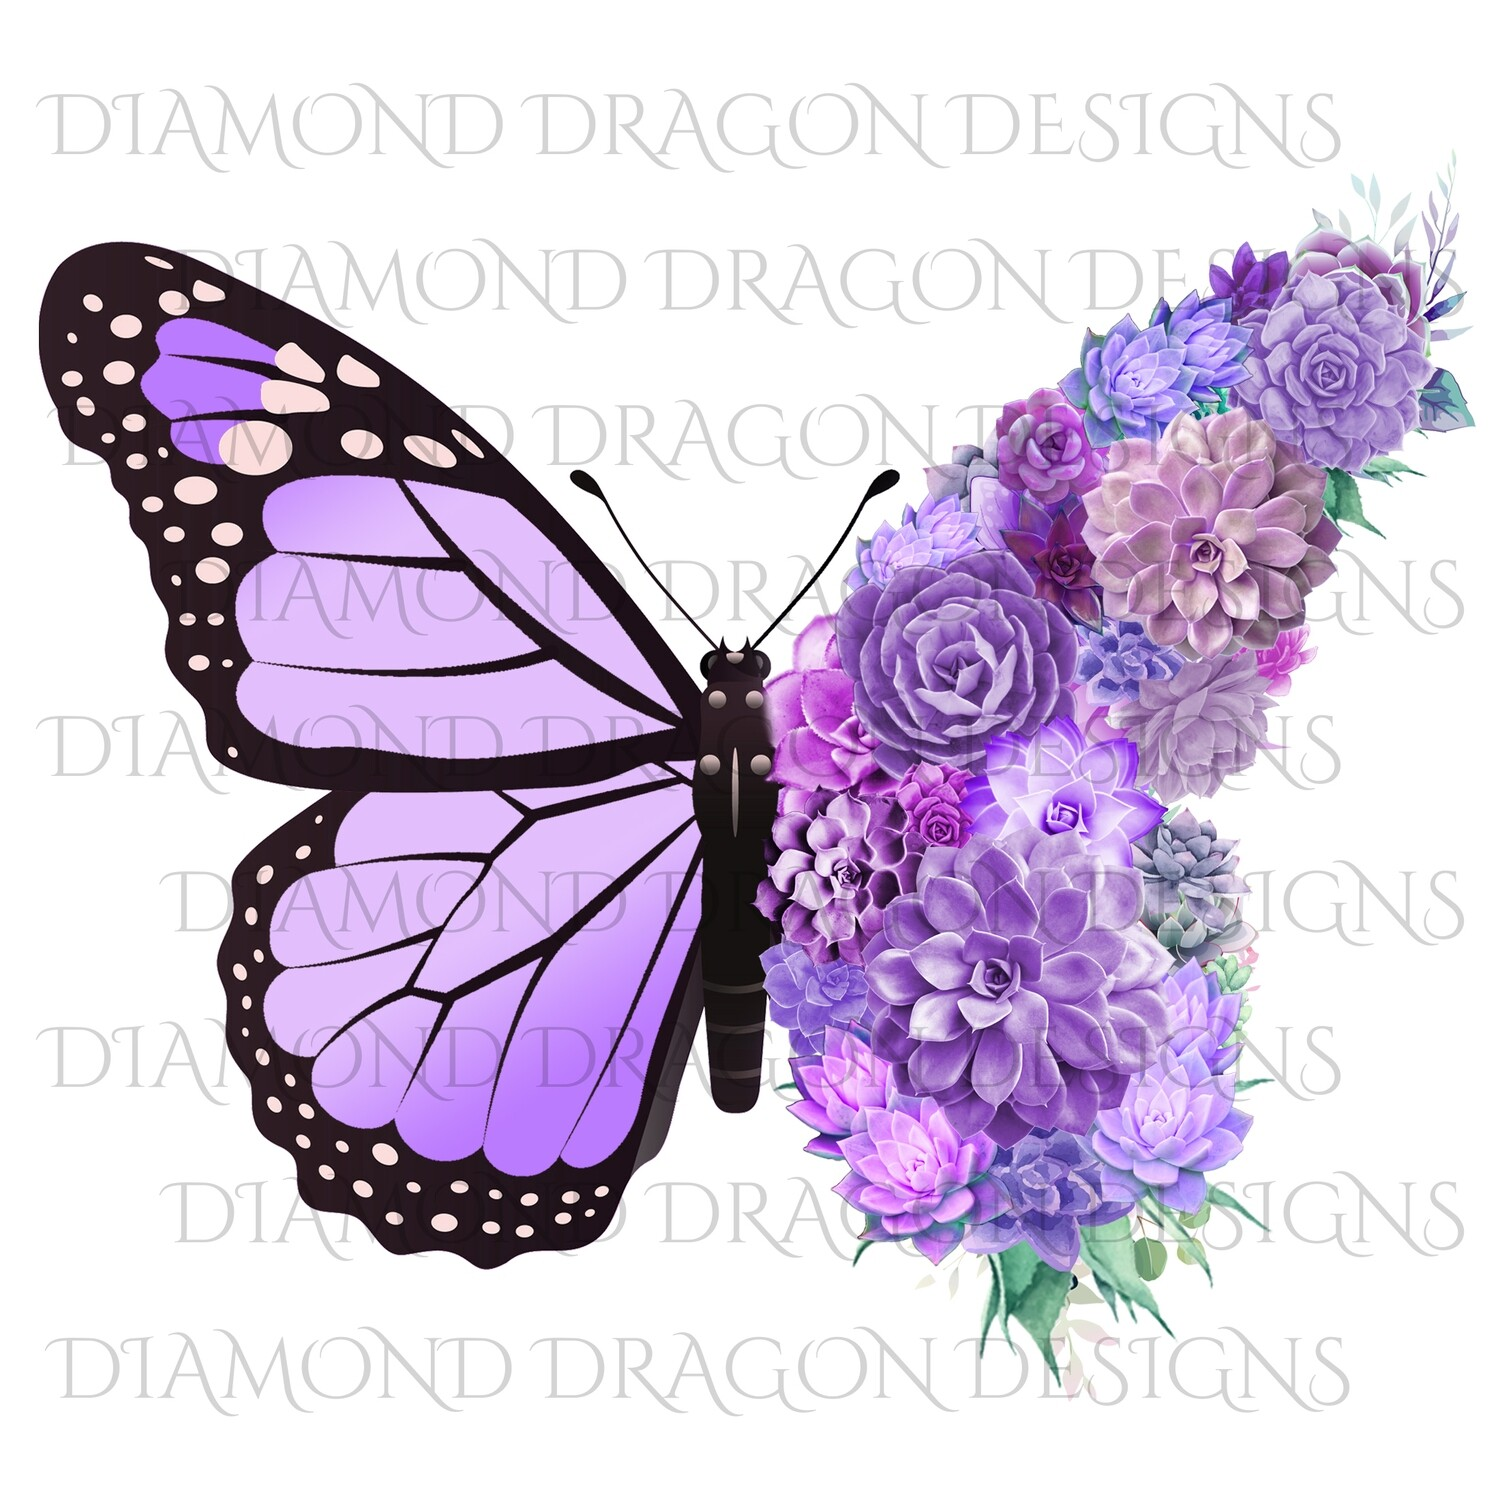 Butterfly - Succulent Butterfly, Light Purple Monarch Butterfly, Watercolor Butterfly, Butterfly with Succulents, Digital Image